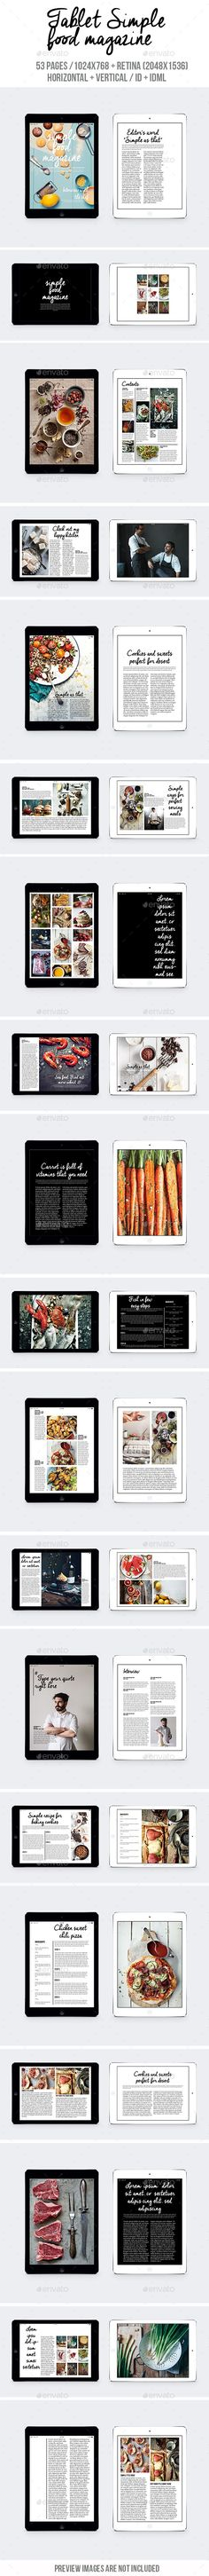 Tablet Simple Food eMagazine Template #emagazine Download: http://graphicriver.net/item/tablet-simple-food-magazine/10260763?ref=ksioks